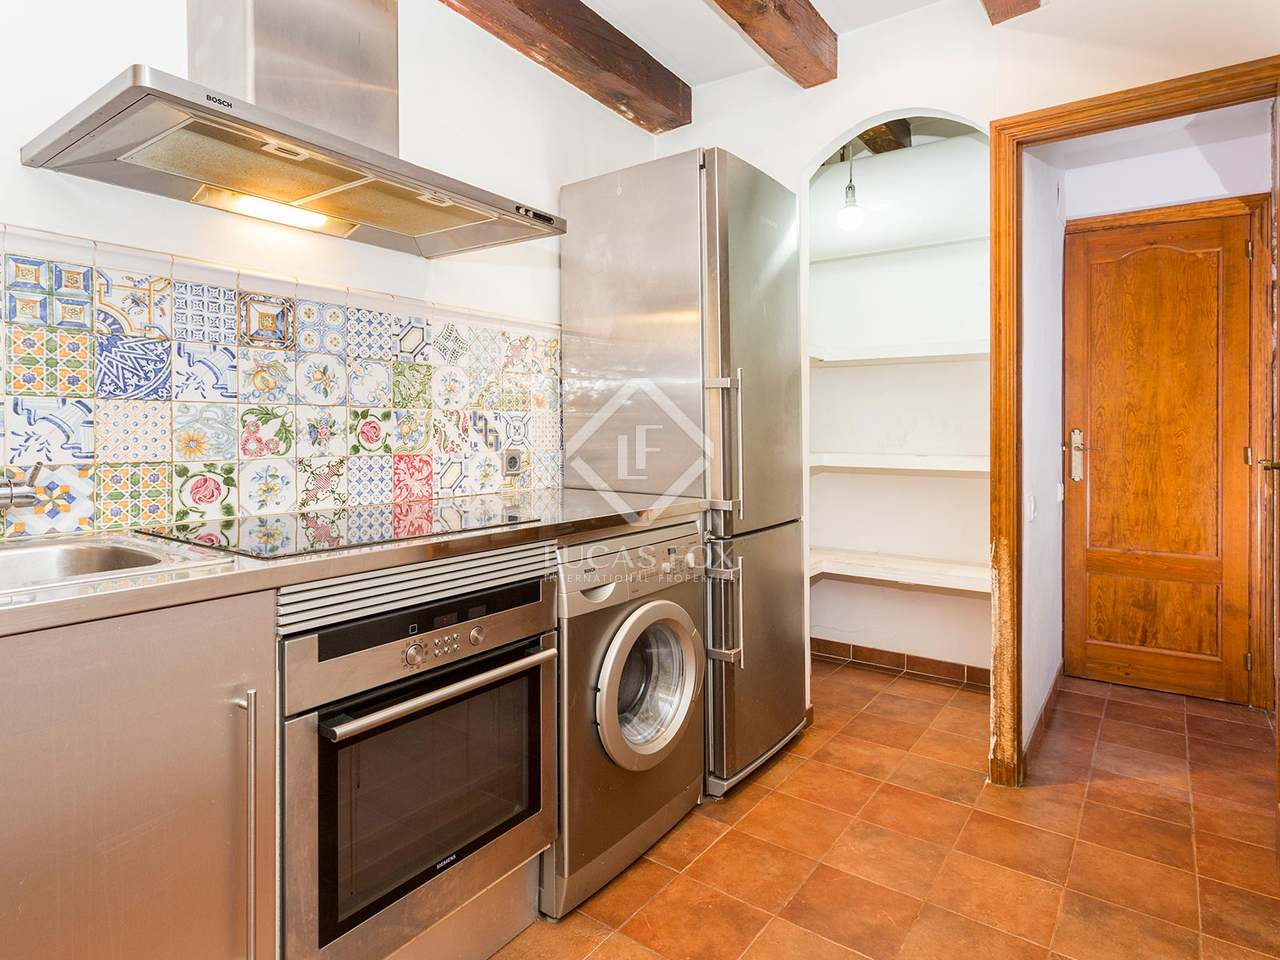 2 bedroom apartment in an excellent central location for 10180 old well terrace